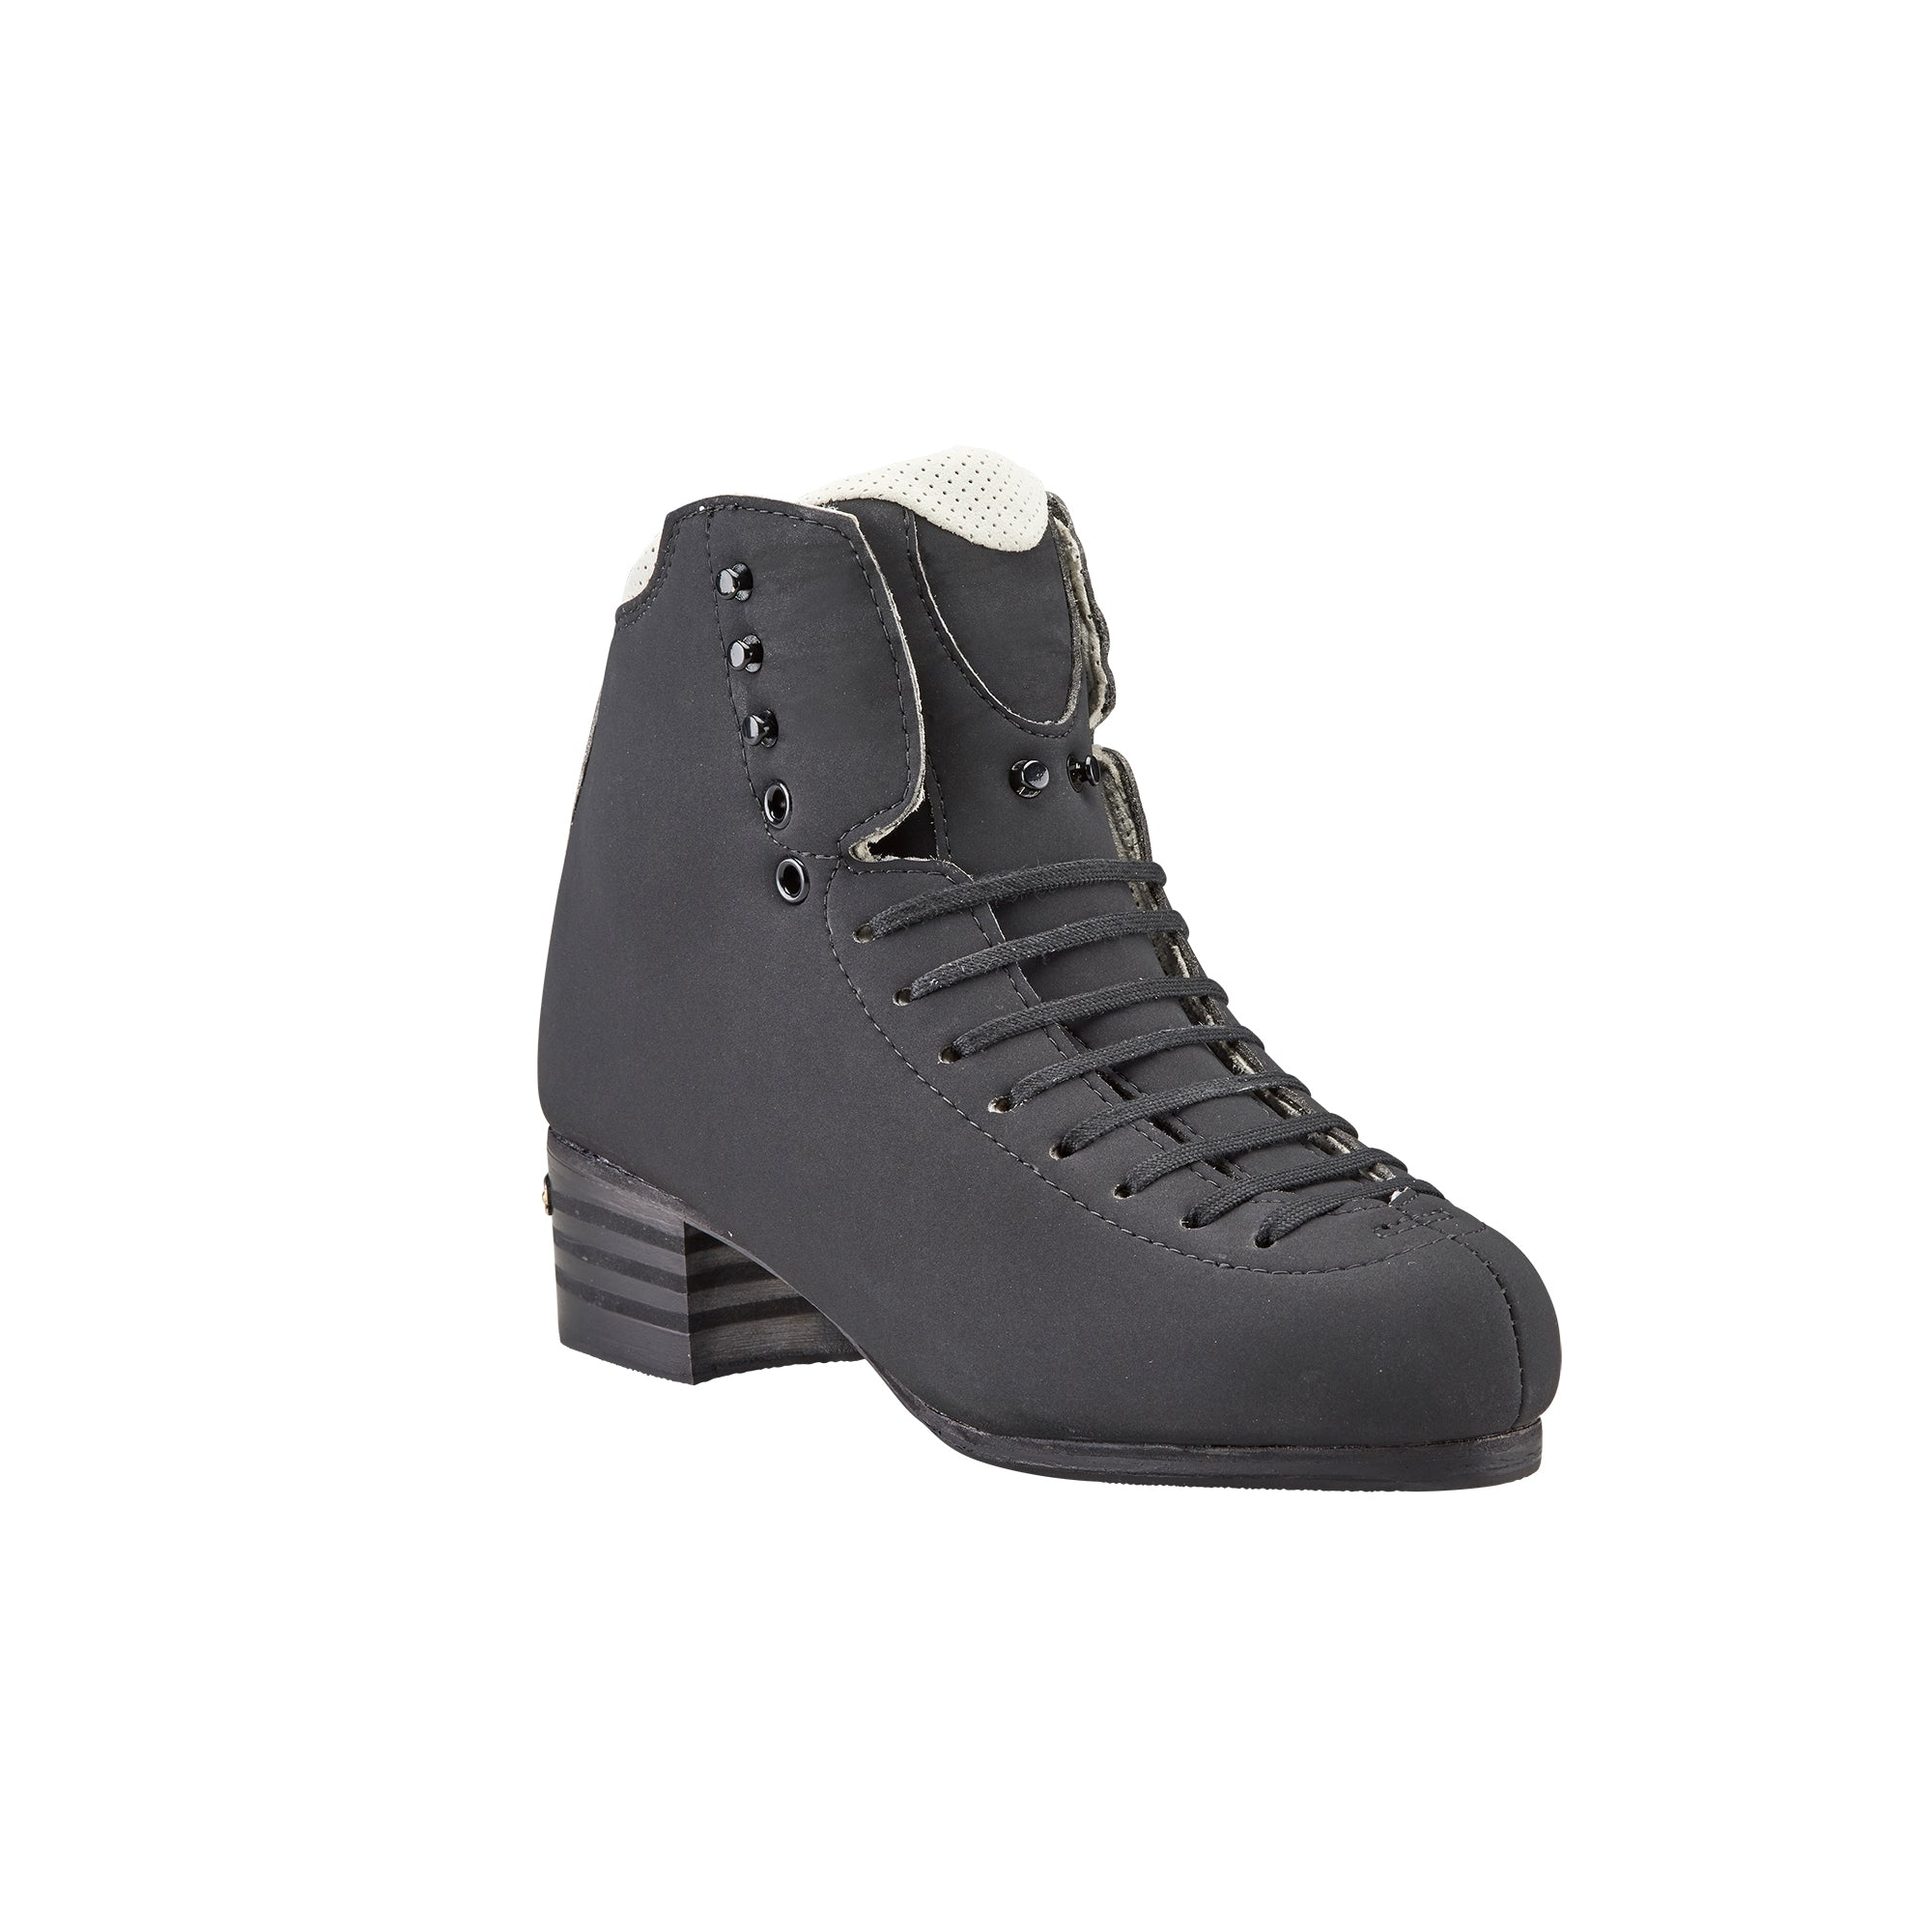 Jackson Supreme Low Cut 5452 Black Figure Skate Boot